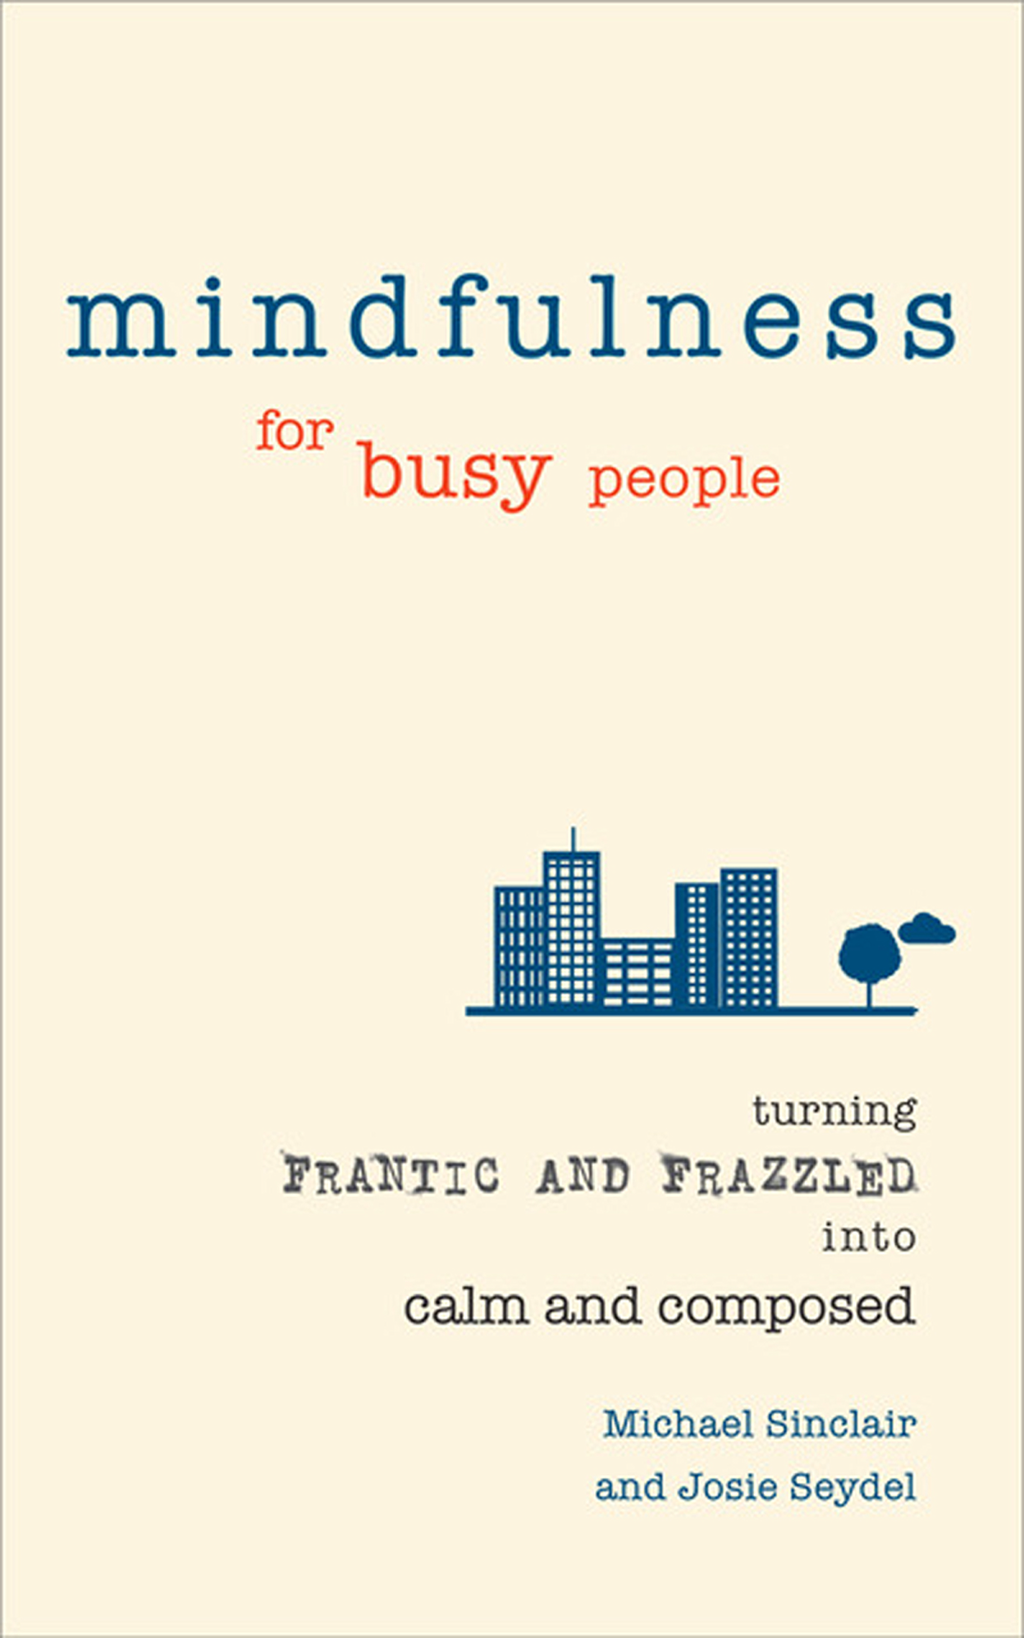 Mindfulness for Busy People Turning from frantic and frazzled into calm and composed